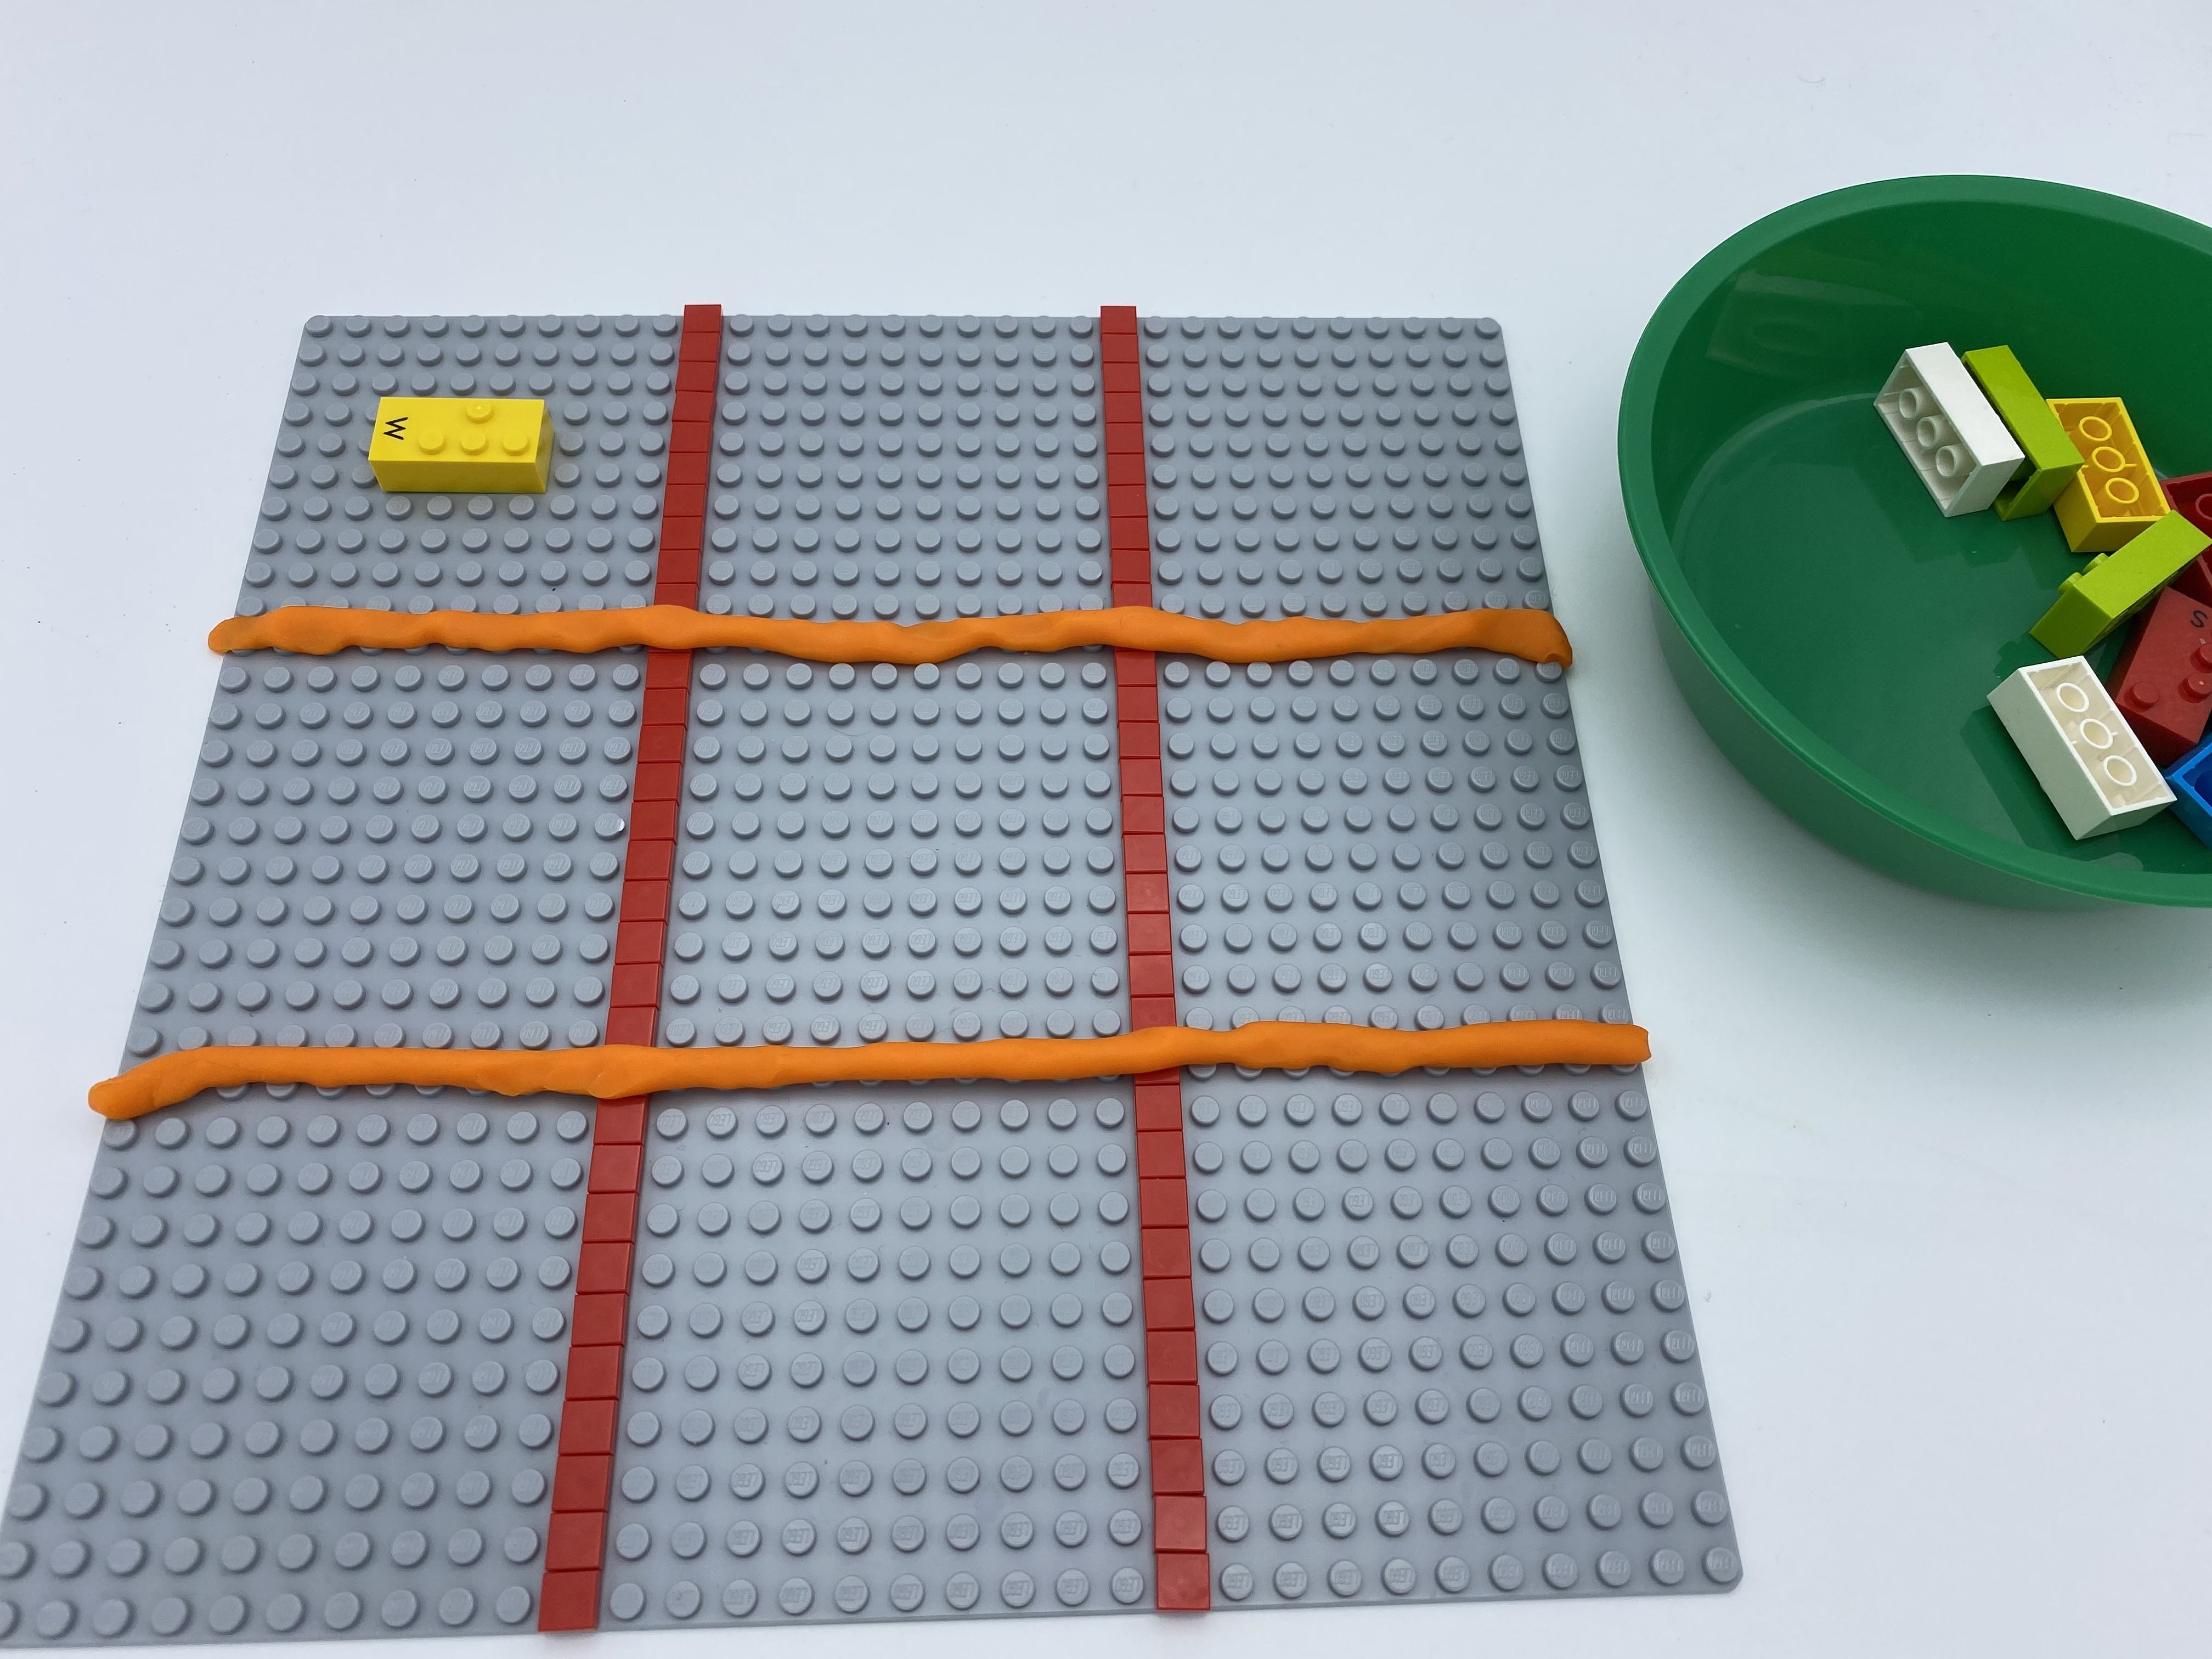 9 squares are made out of play-dough on a base plate. A horizontal bricks is attached in the top left square.